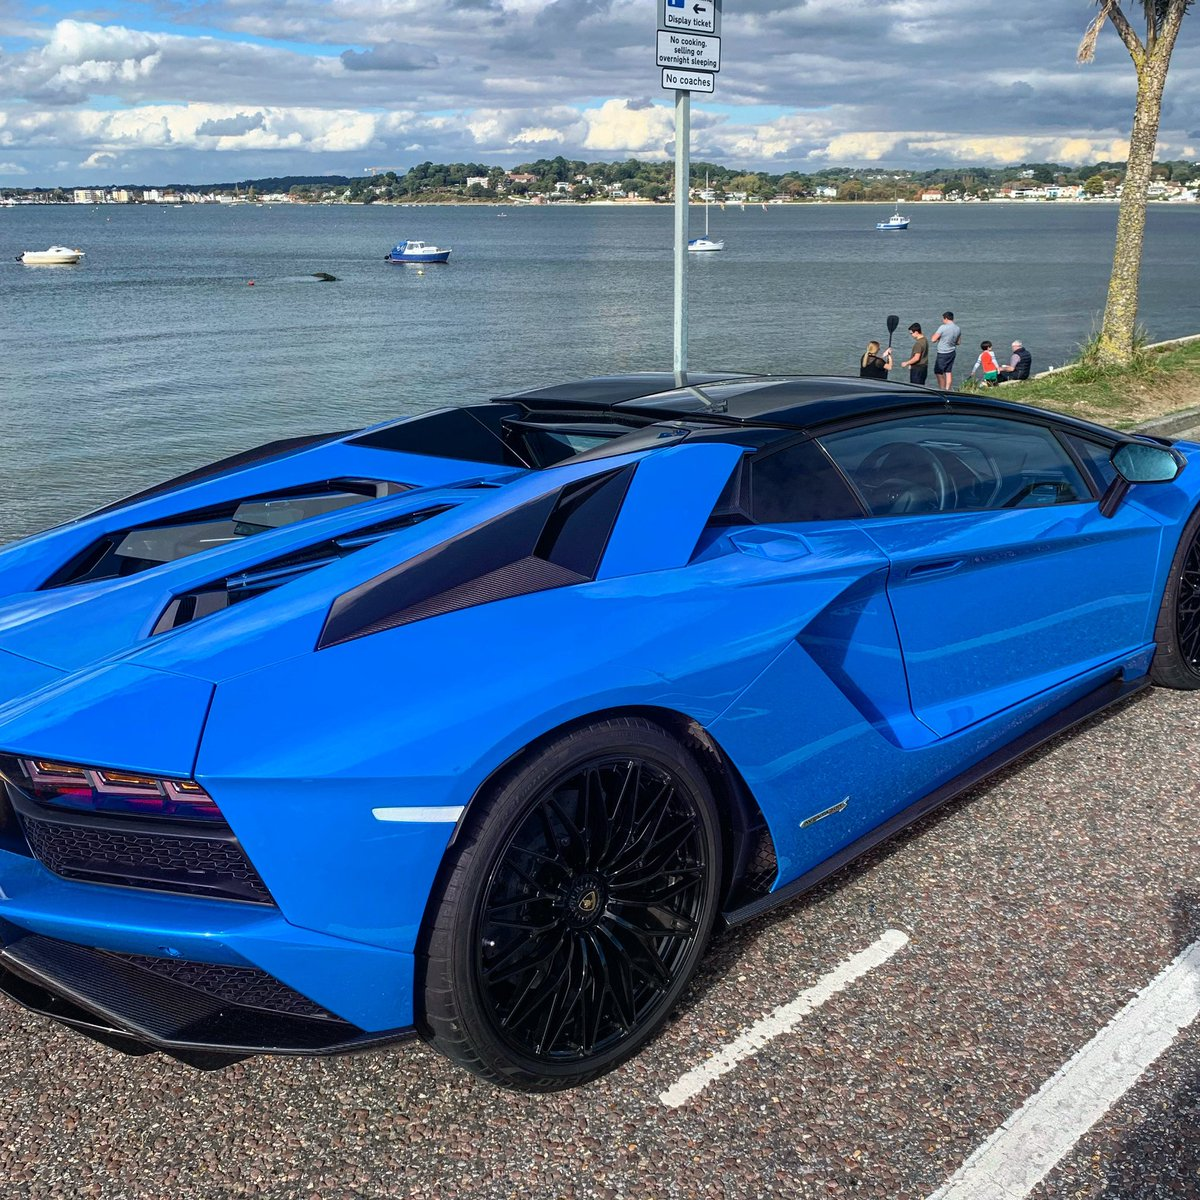 Unedited and bringing some colour into the Weekend. #sandbanks #poole #dorset #supercar https://t.co/pUDRRNZLmZ